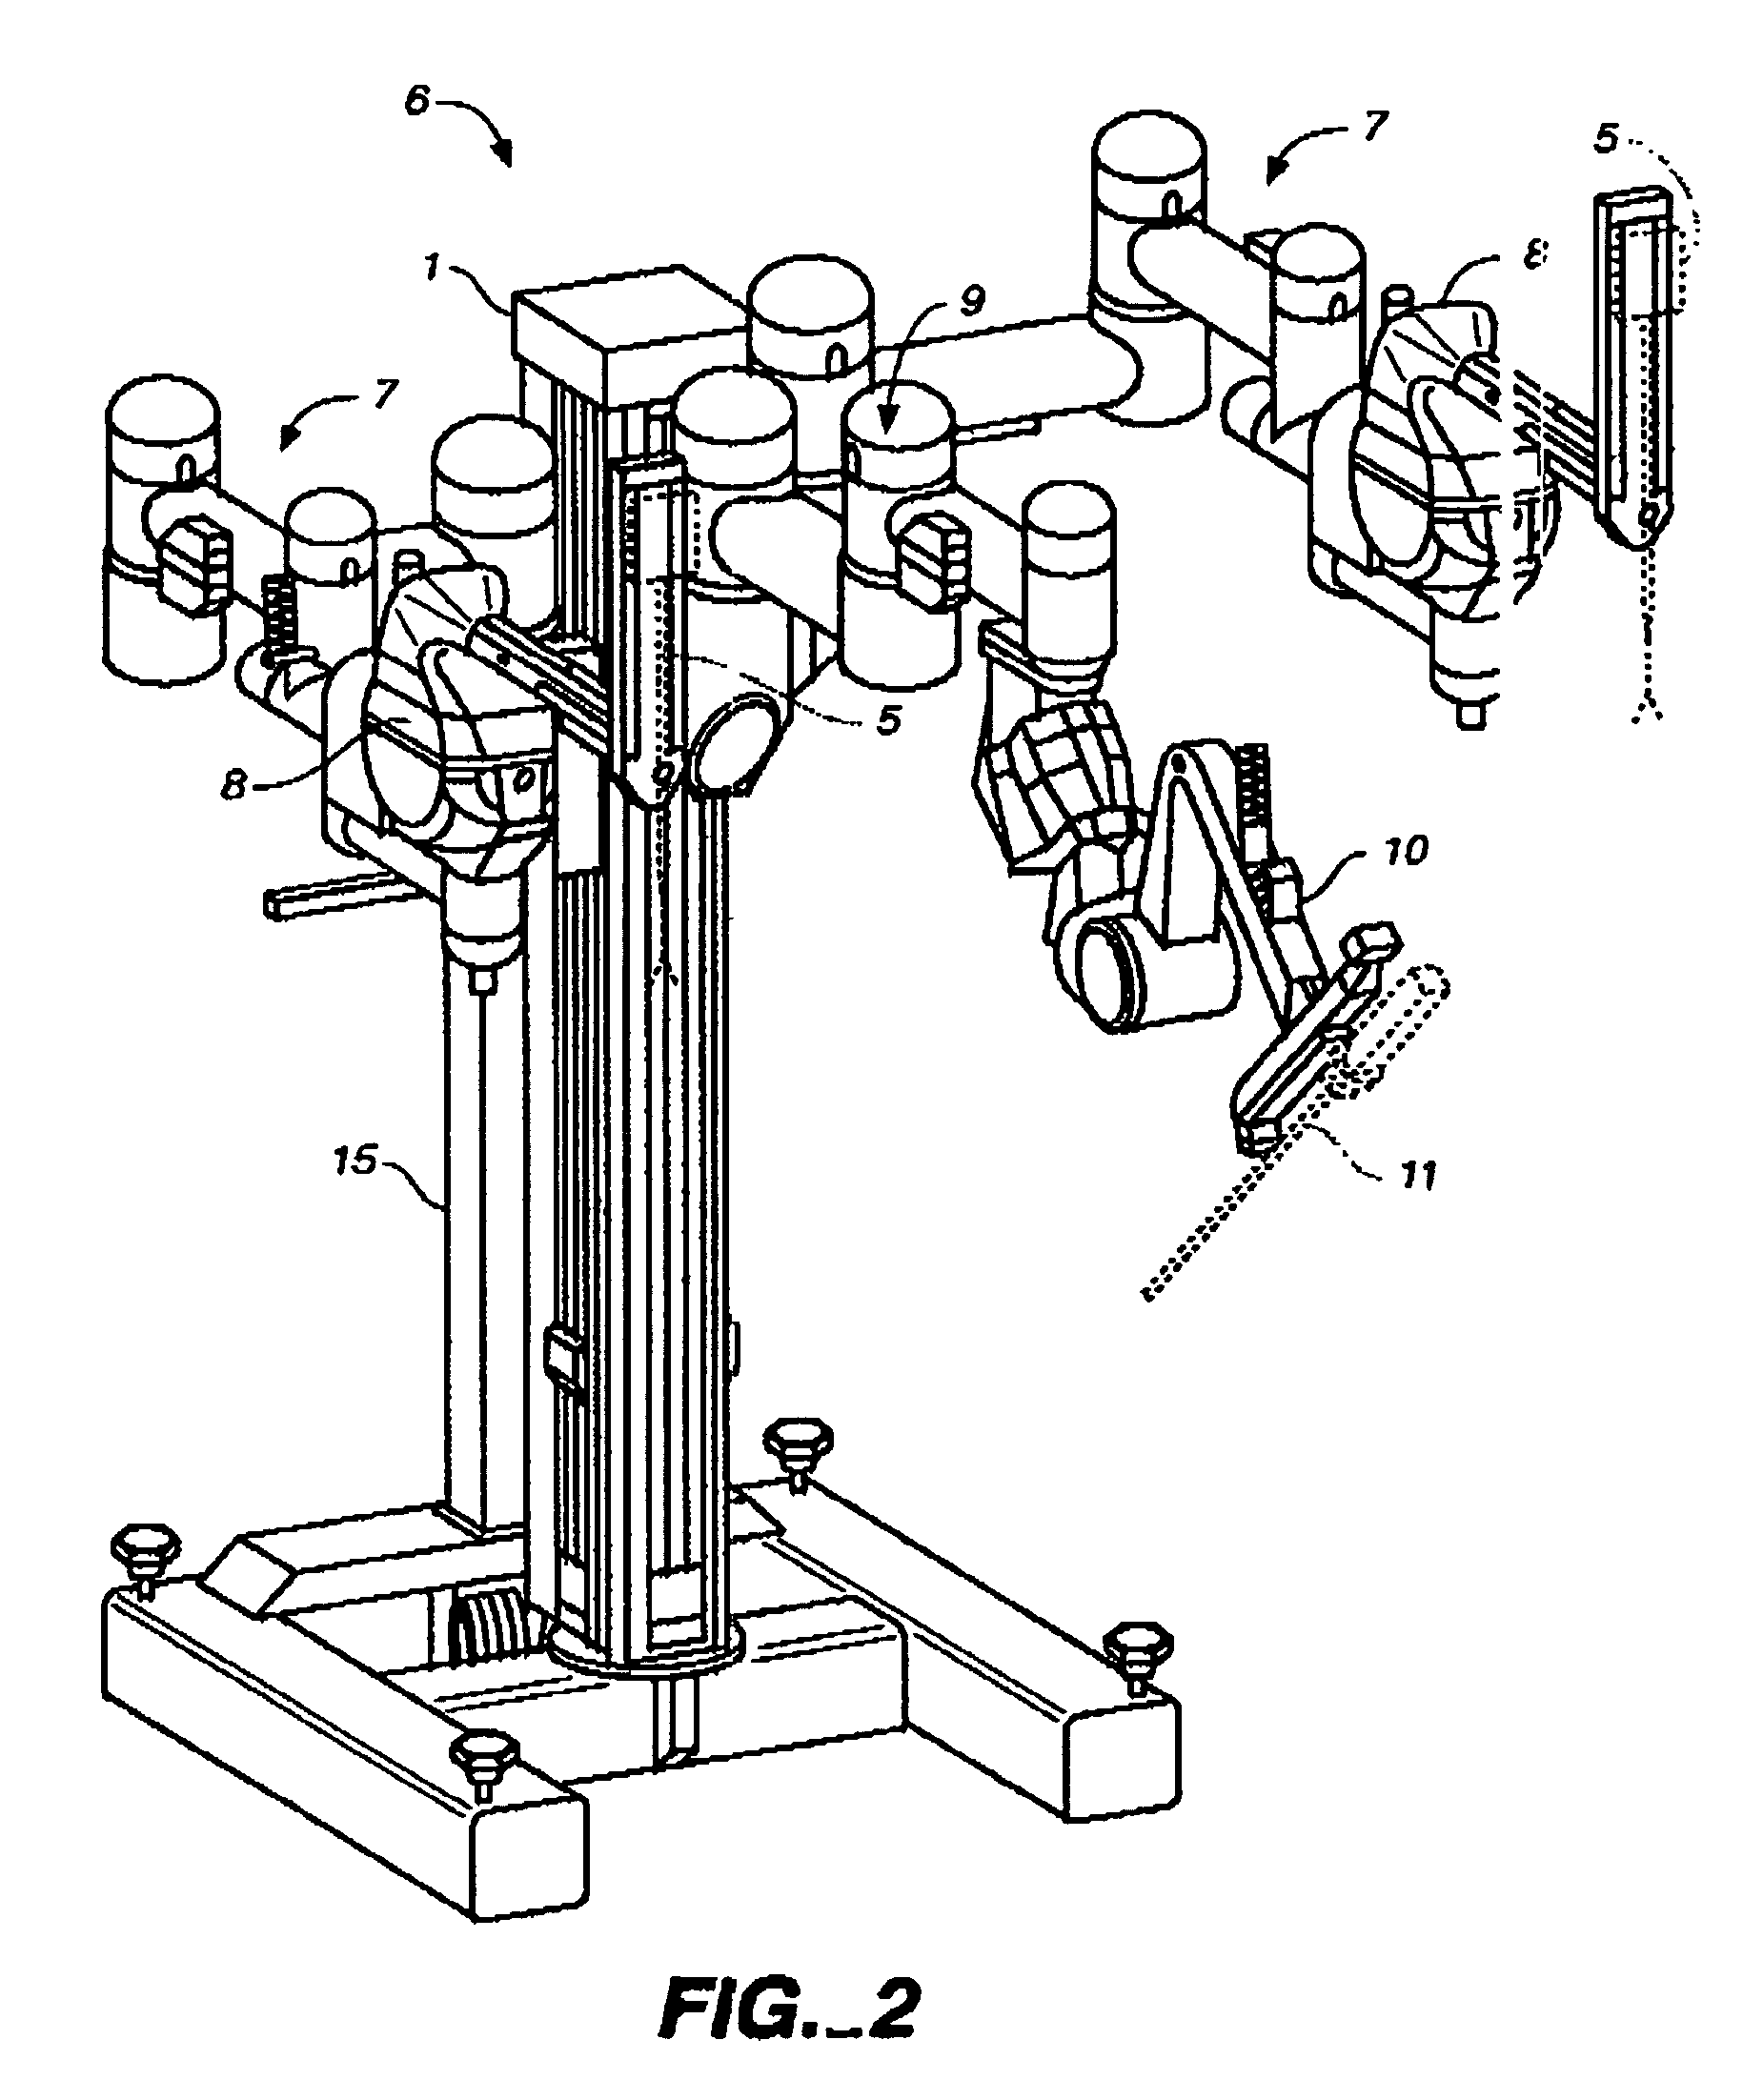 patent us7824401 - robotic tool with wristed monopolar electrosurgical end effectors